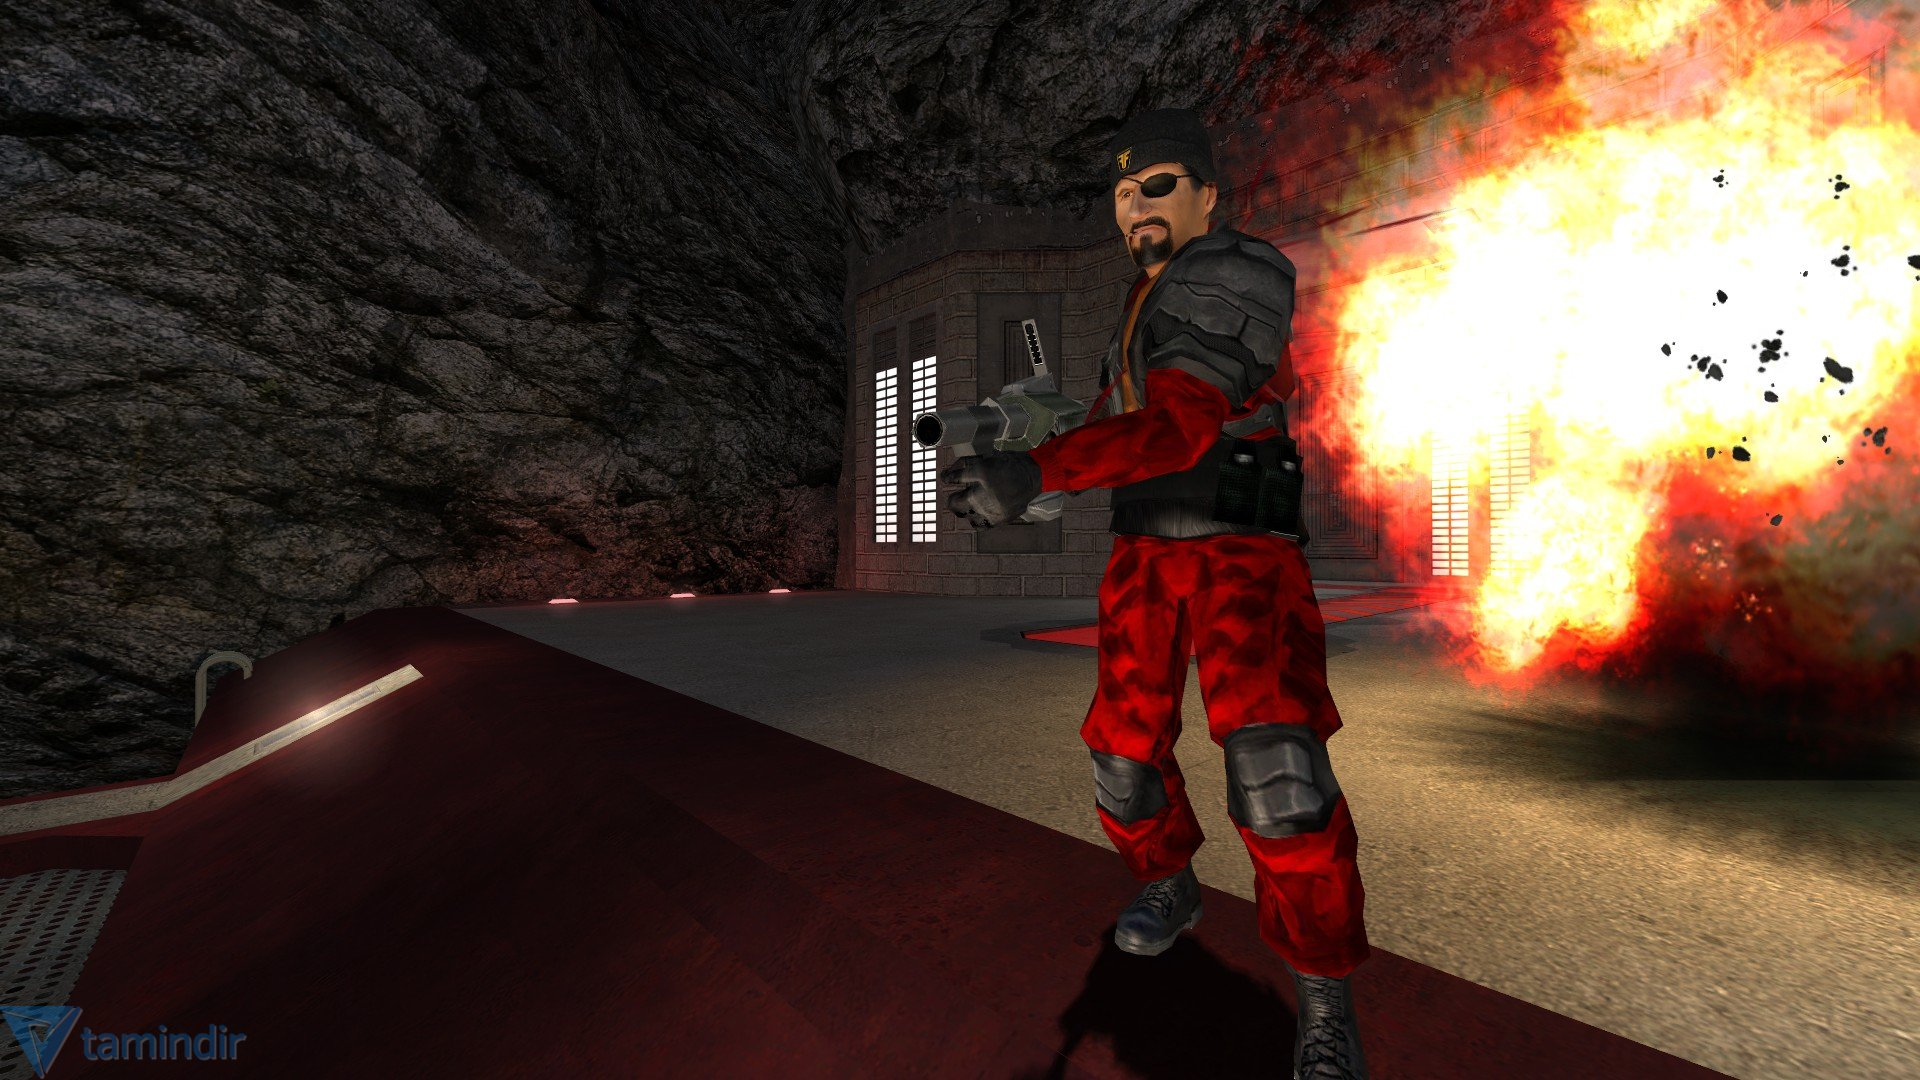 Fortress Forever, a Team Fortress Classic mod for Half Life 2